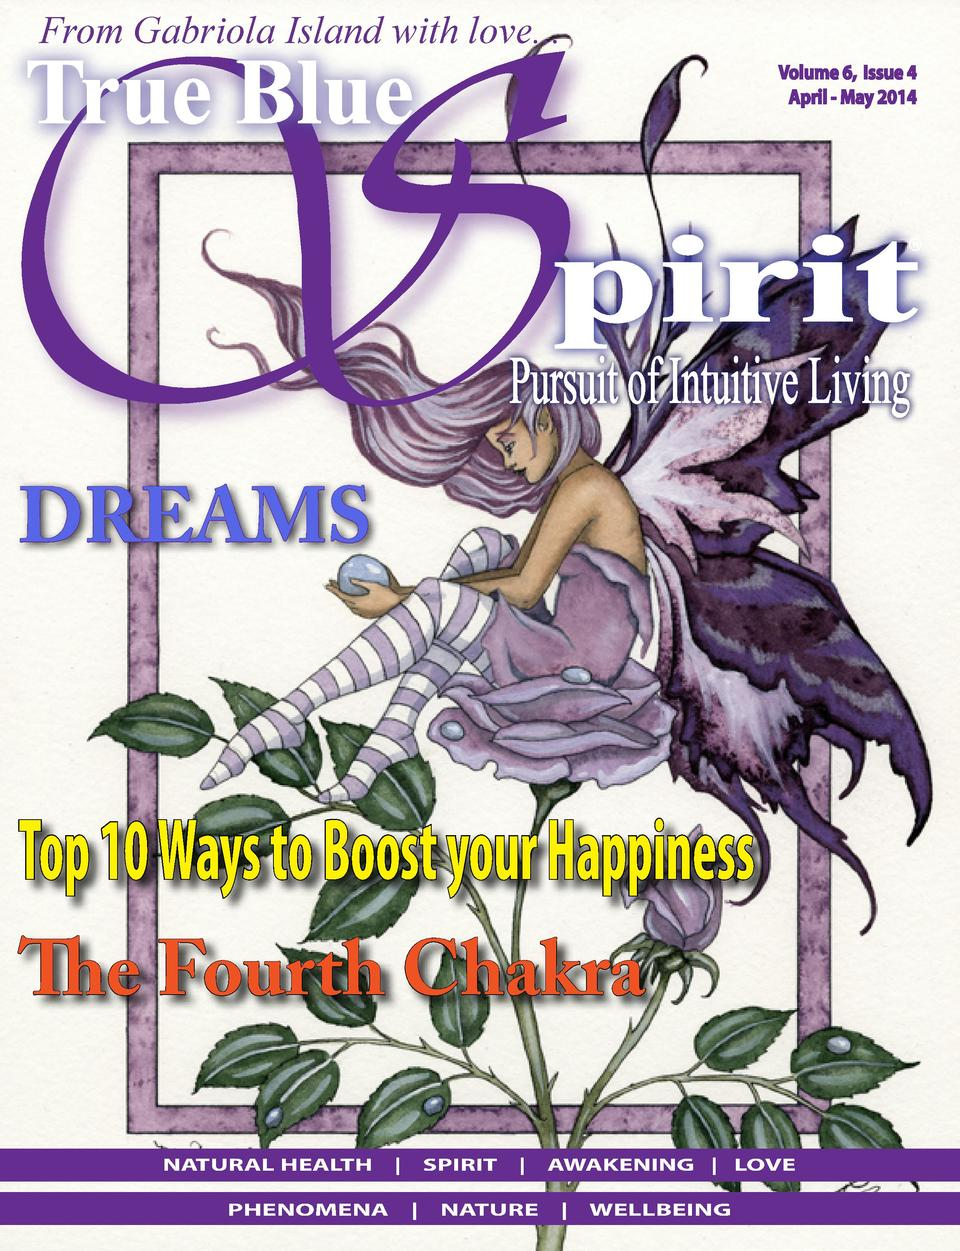 From Gabriola Island with love... Volume 6, Issue 4 April - May 2014      DREAMS  Top 10 Ways to Boost your Happiness The ...